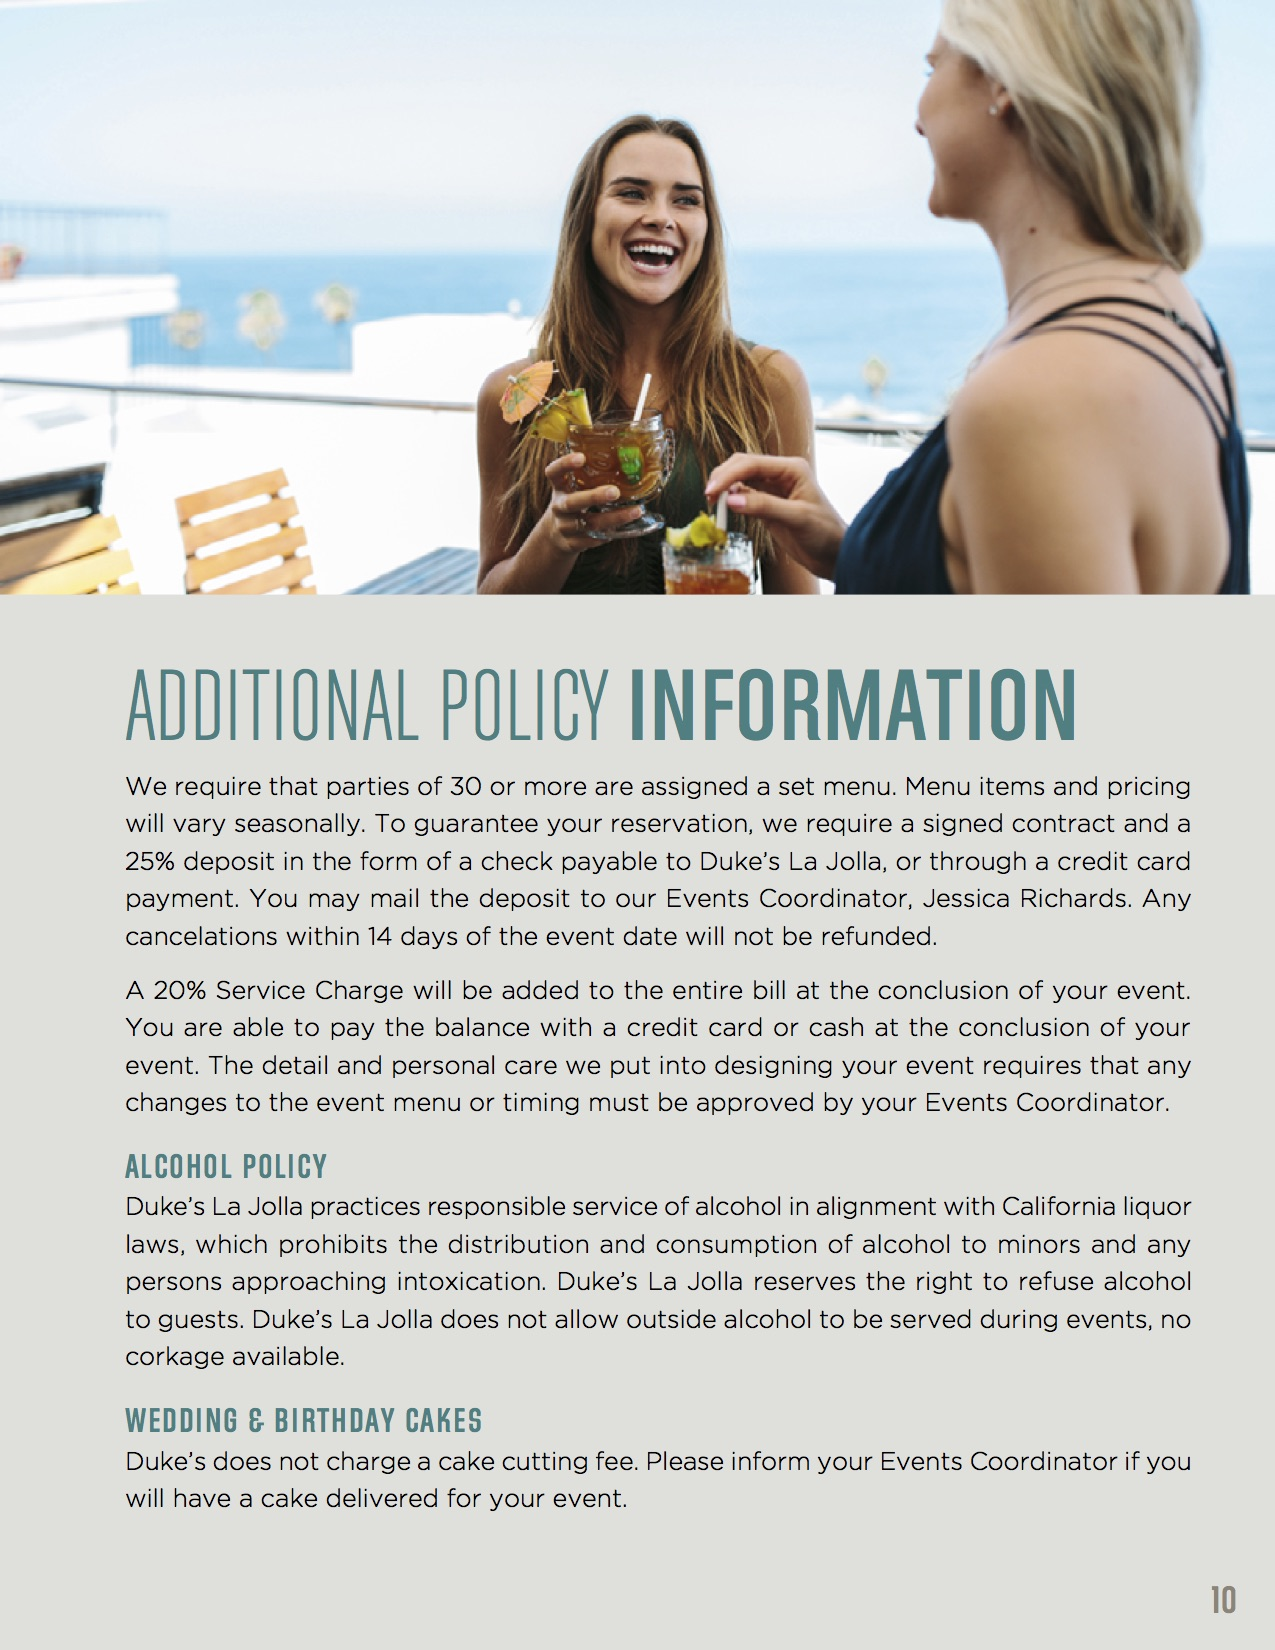 Additional policy information with two woman drinking on top half